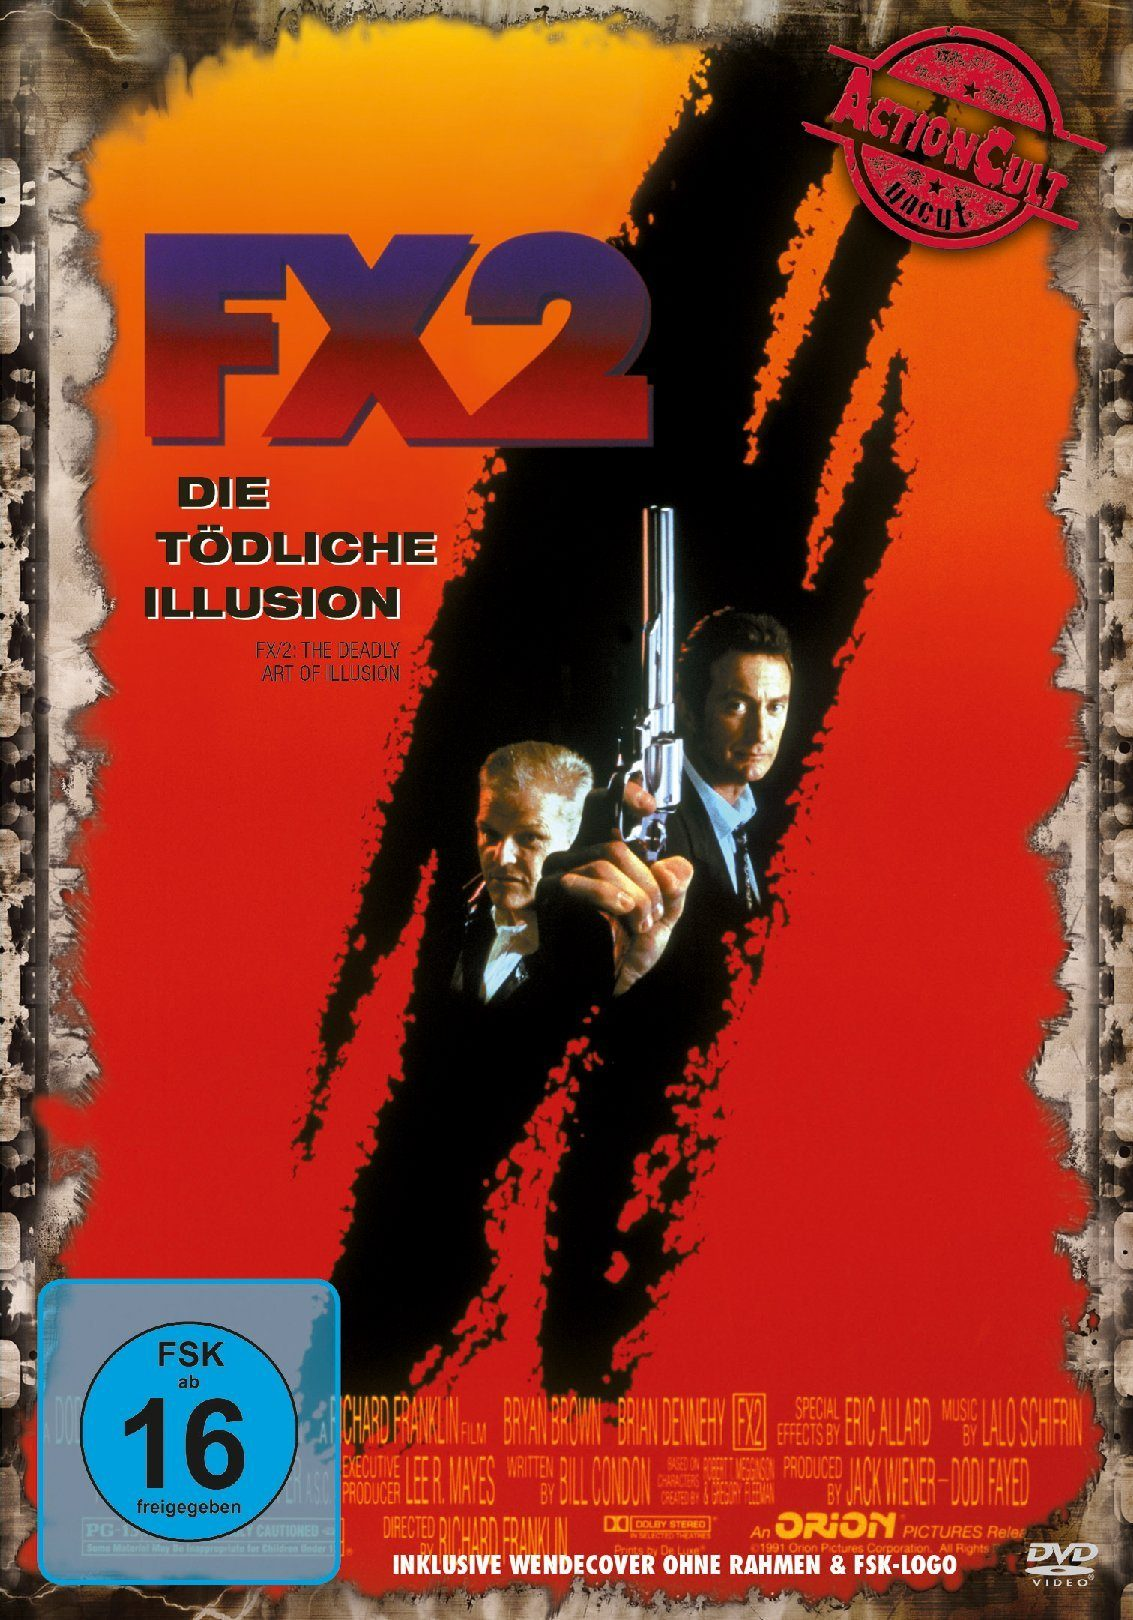 Fox FX 2 - Die tödliche Illusion (Action Cult uncut) »DVD«